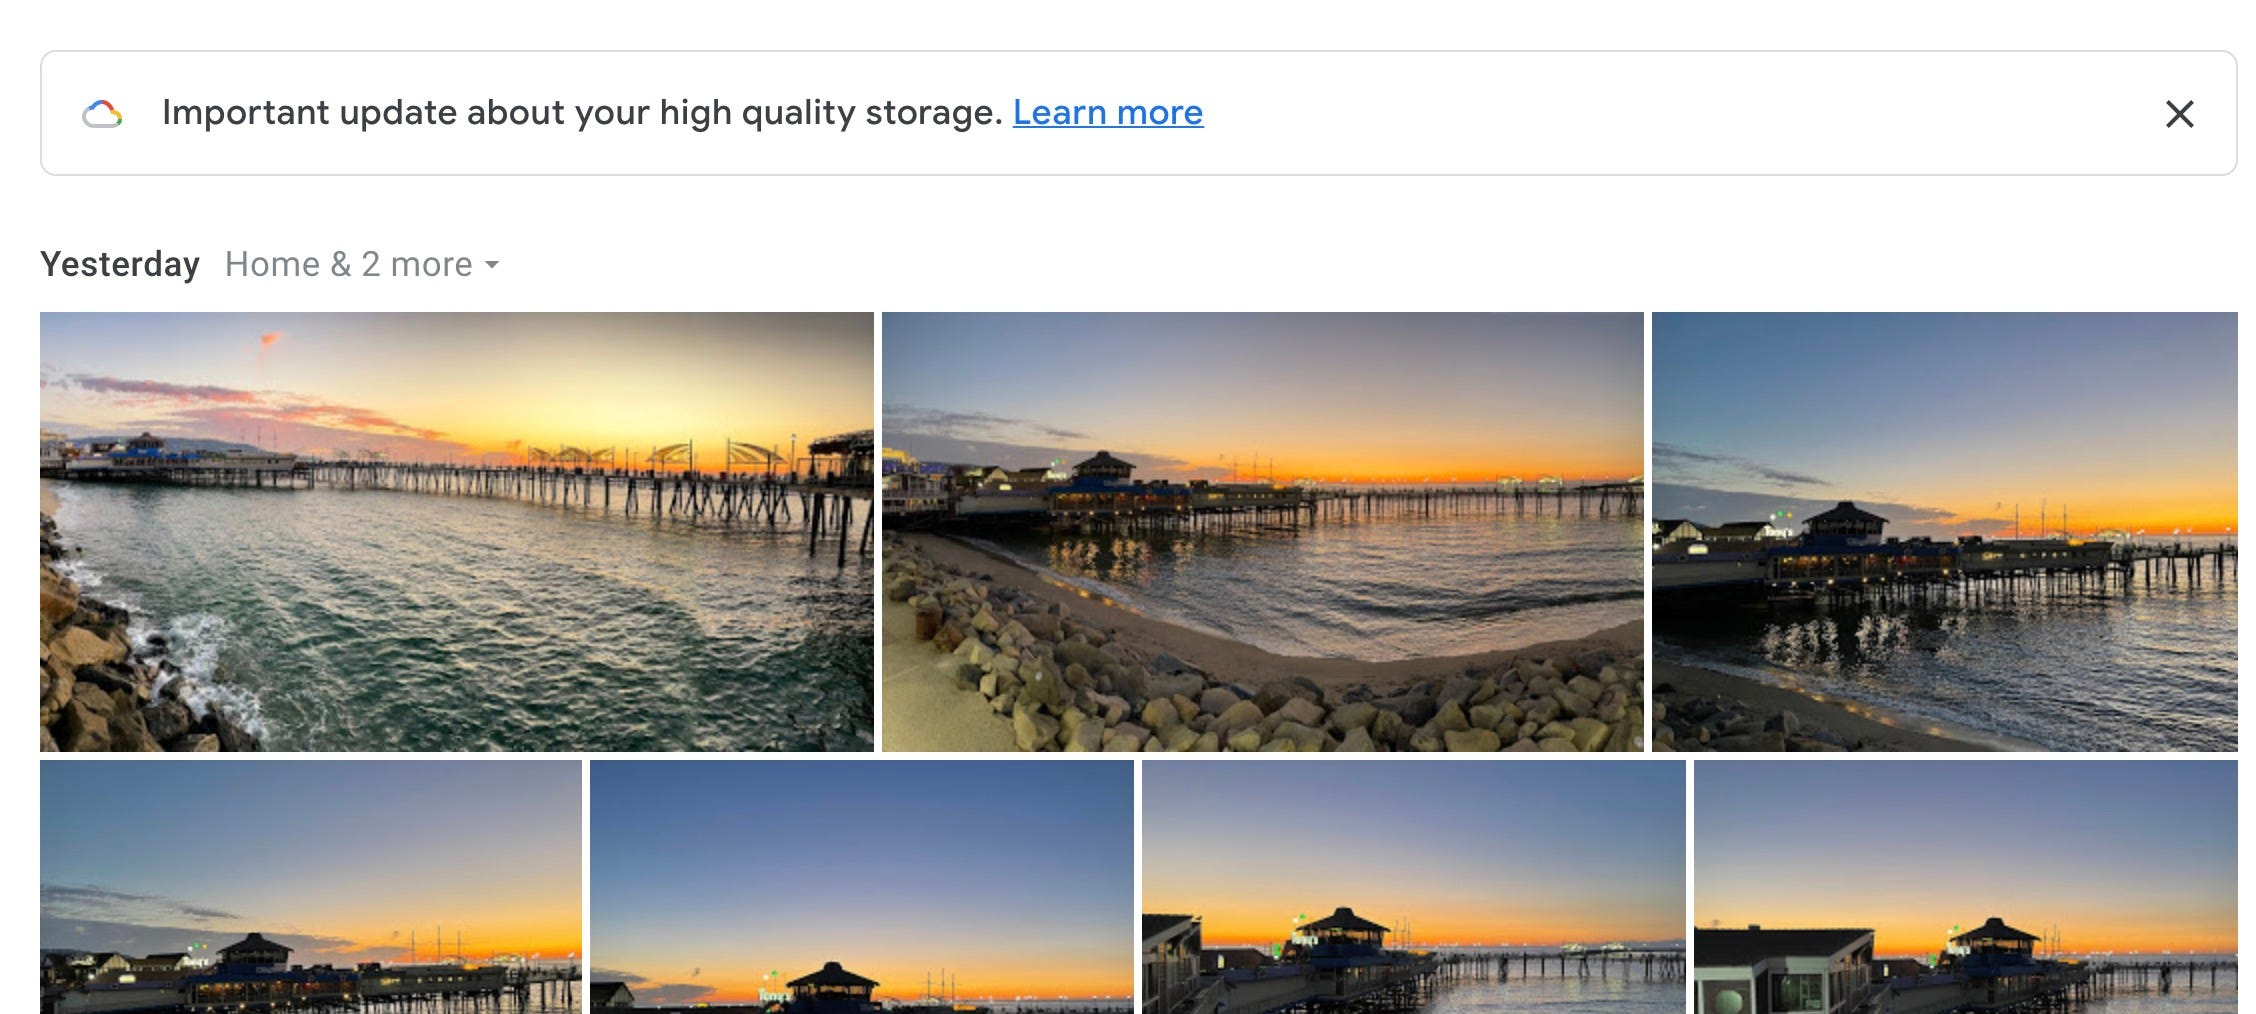 Free unlimited photo storage is a thing of the past – thanks a lot, Google. So what to do?